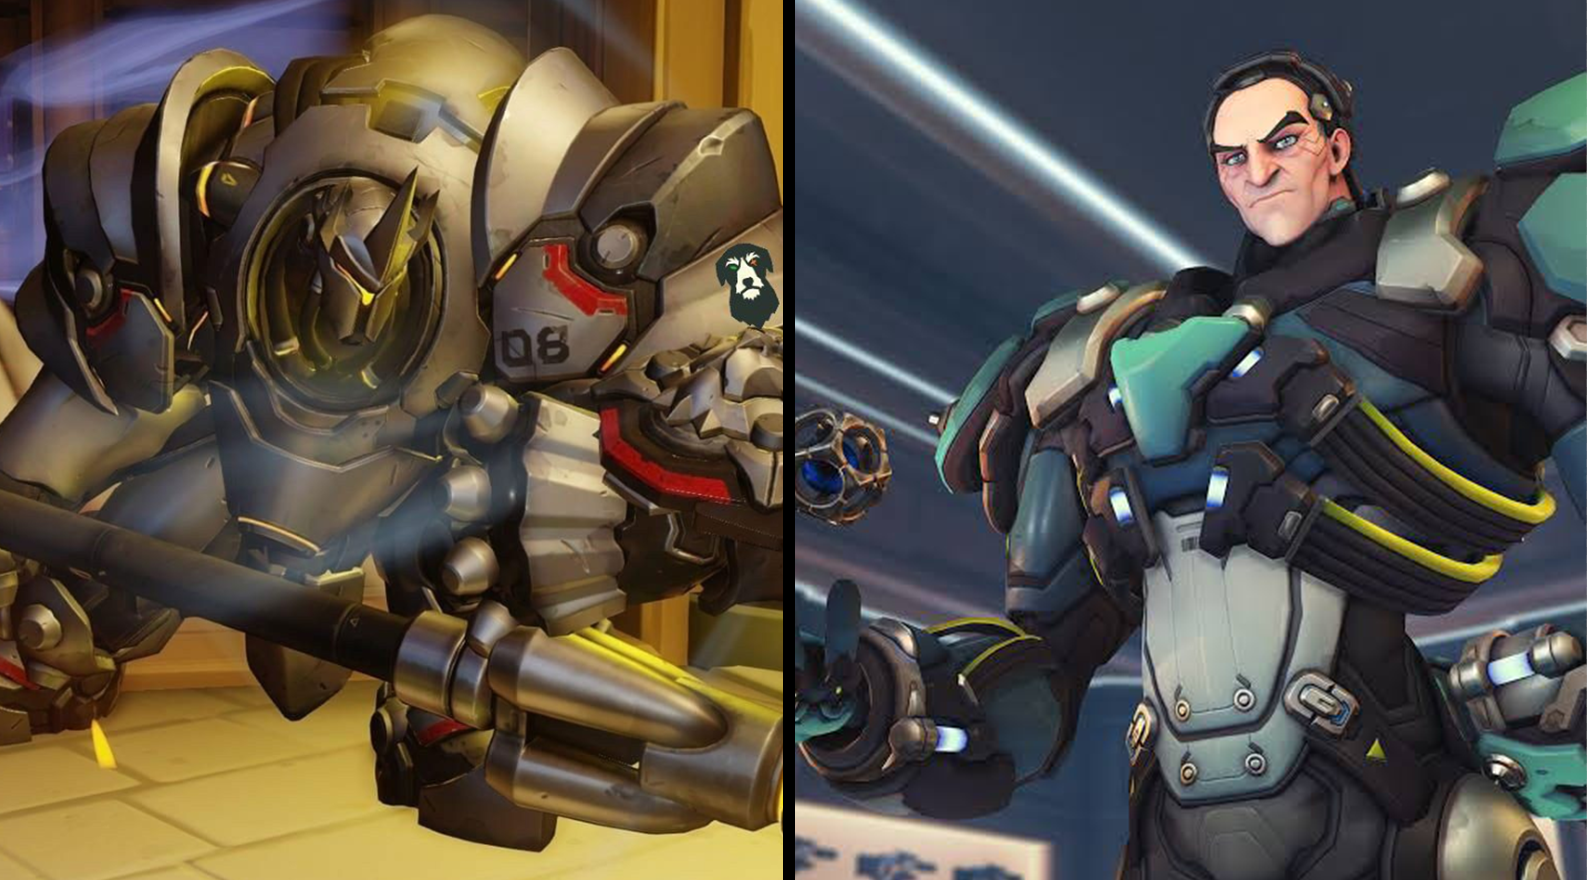 Overwatch heroes Sigma and Reinhardt